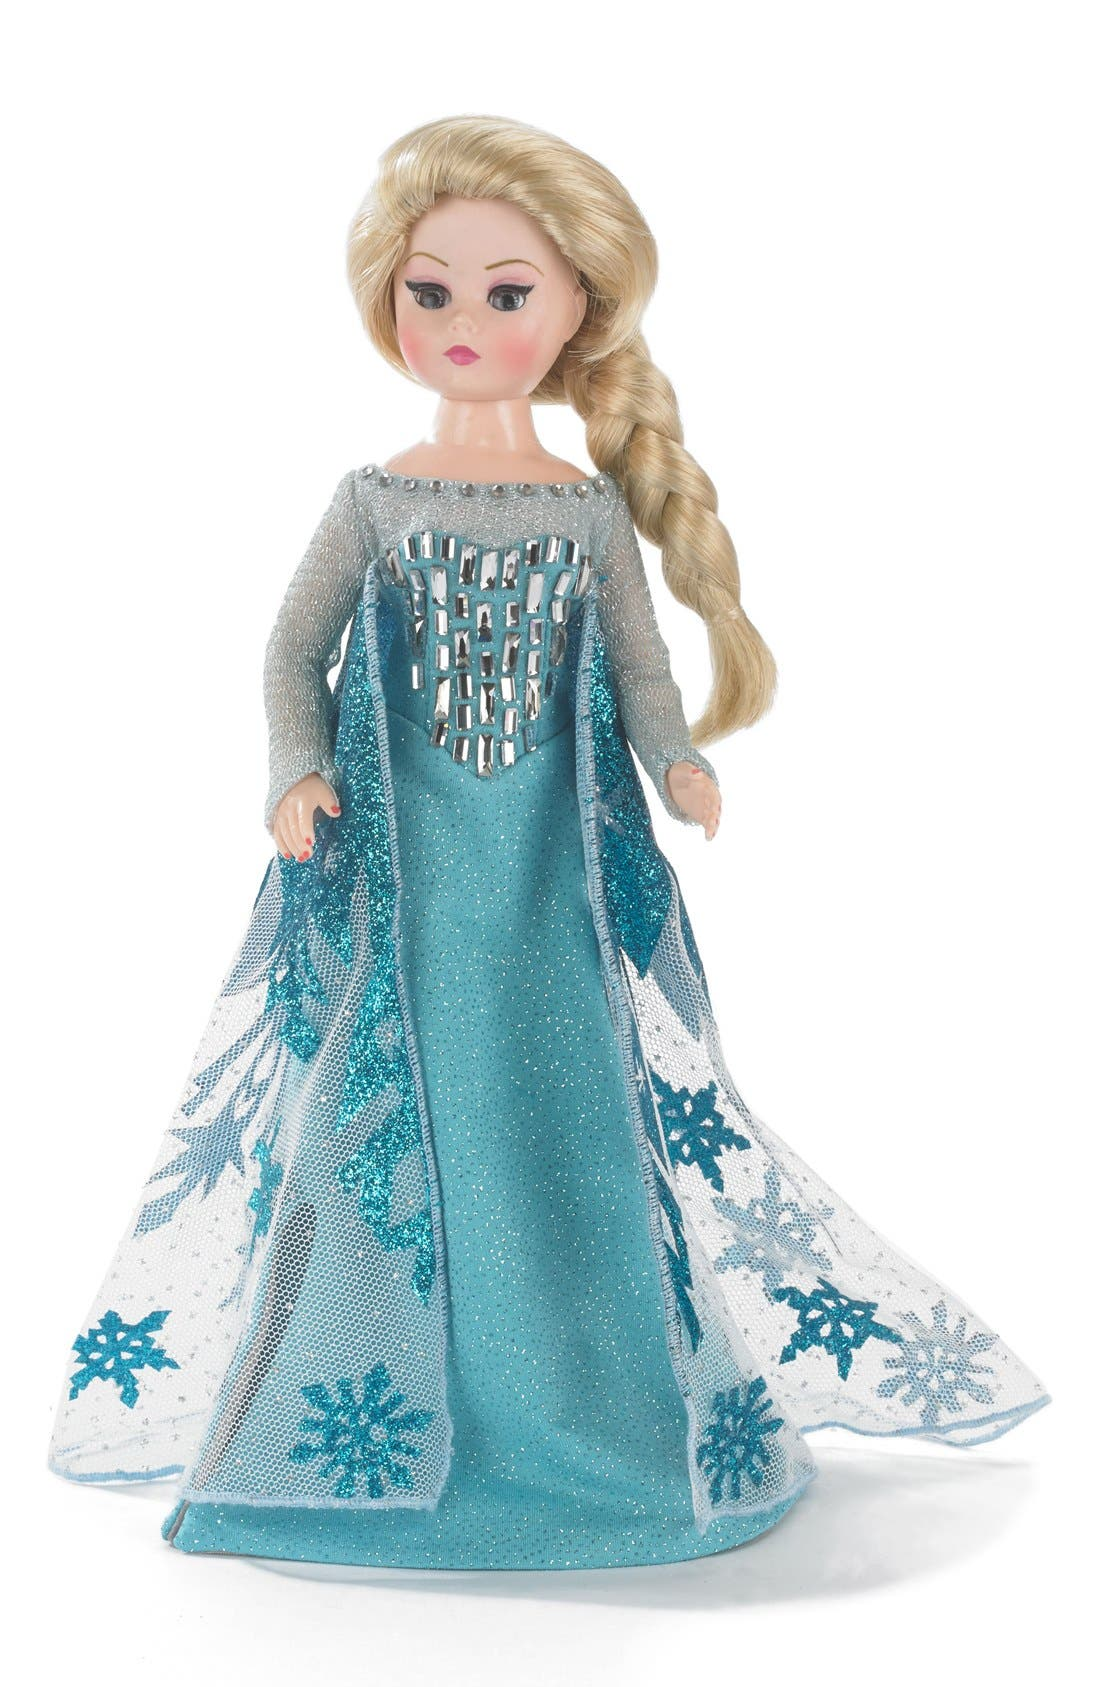 Disney<sup>®</sup> Frozen Elsa 10 Inch Collectible Doll, Main, color, 000